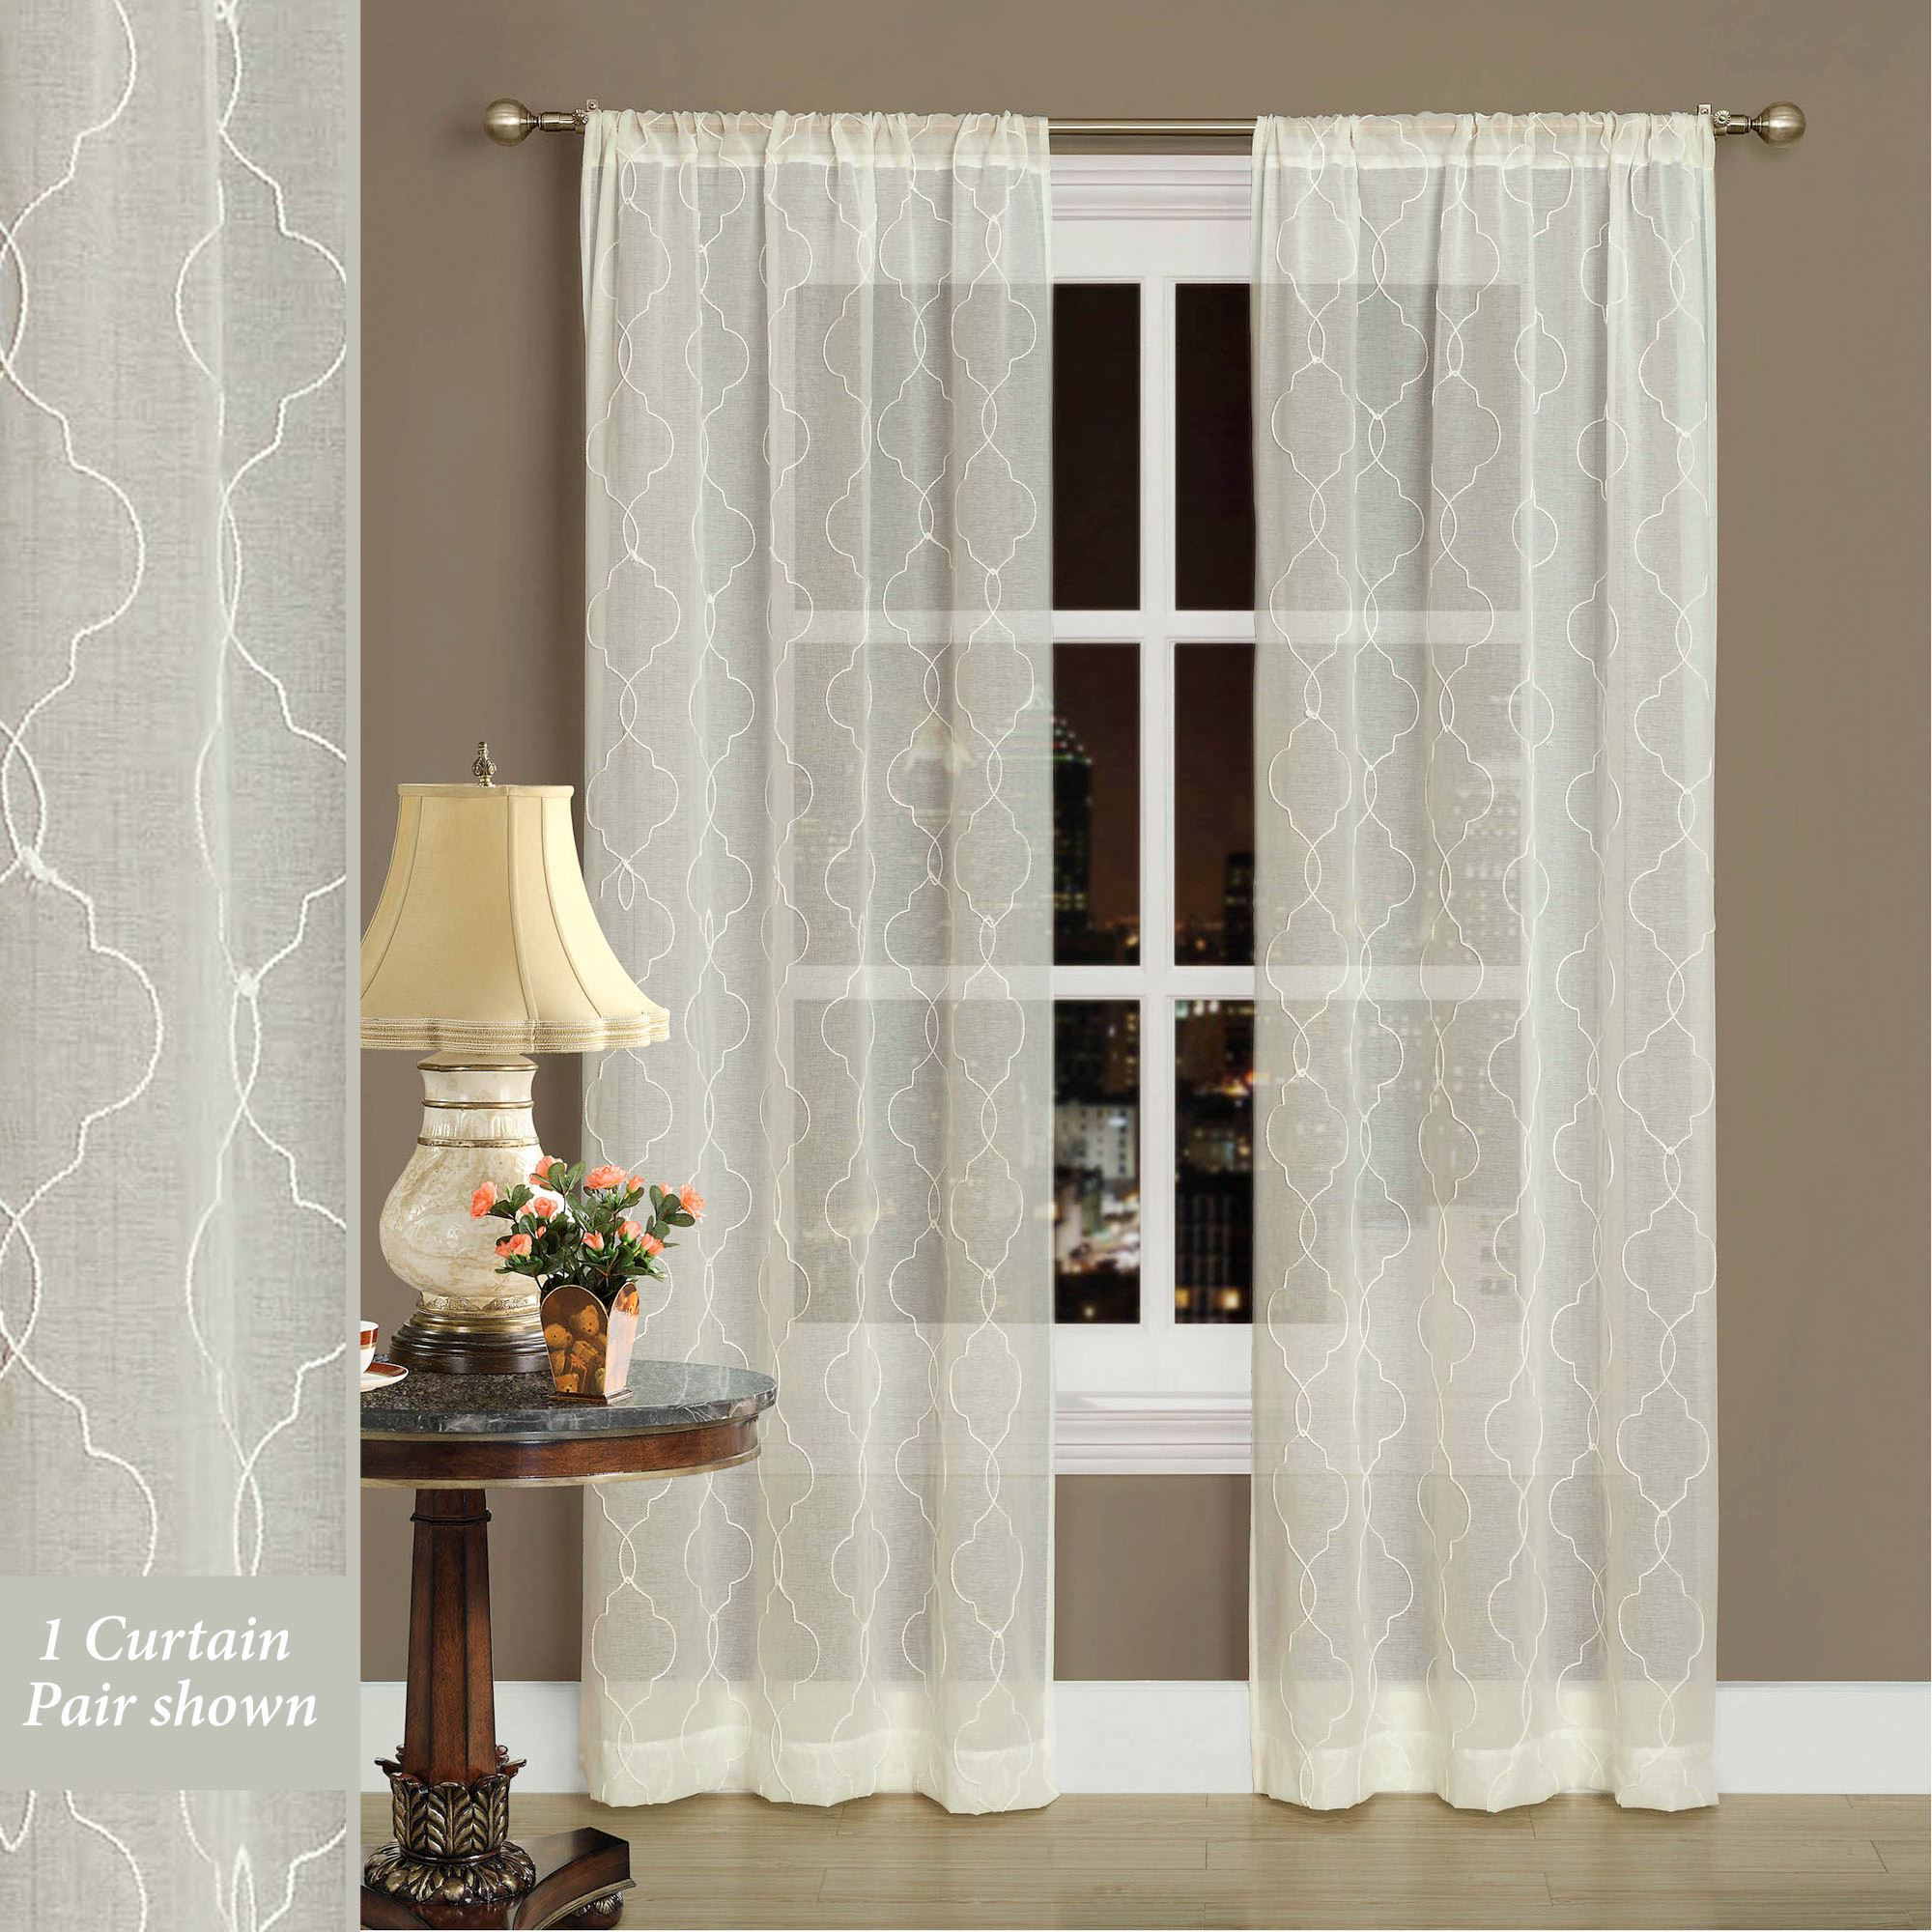 Audrey Ivory Semi Sheer Curtains By Laura Ashley